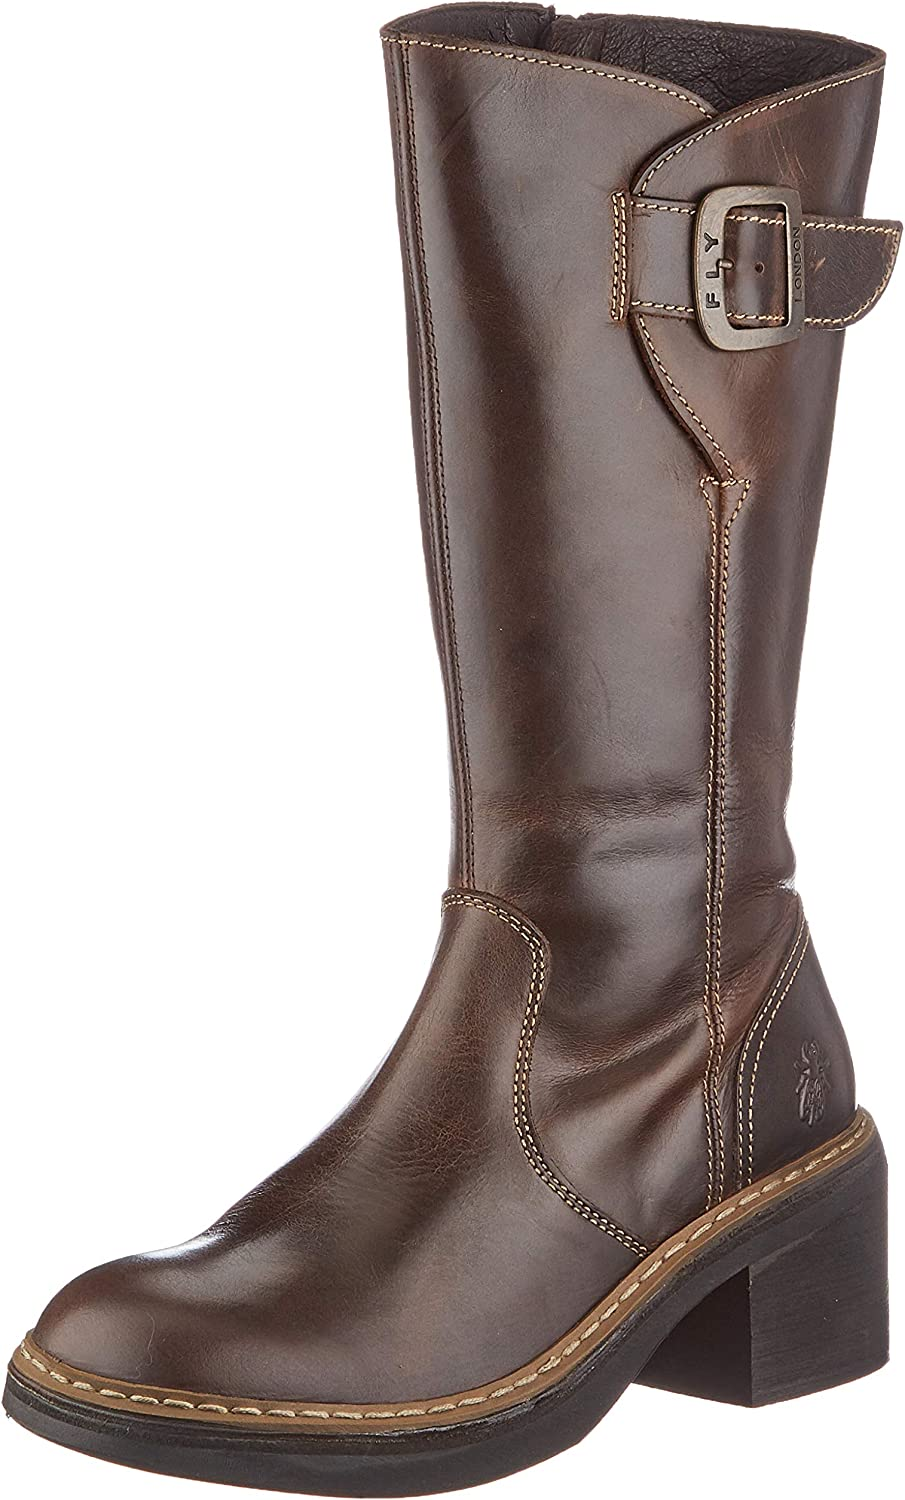 FLY LONDON Women's ERIS050FLY Mid DK. Ranking TOP19 Calf Boot New popularity Brown